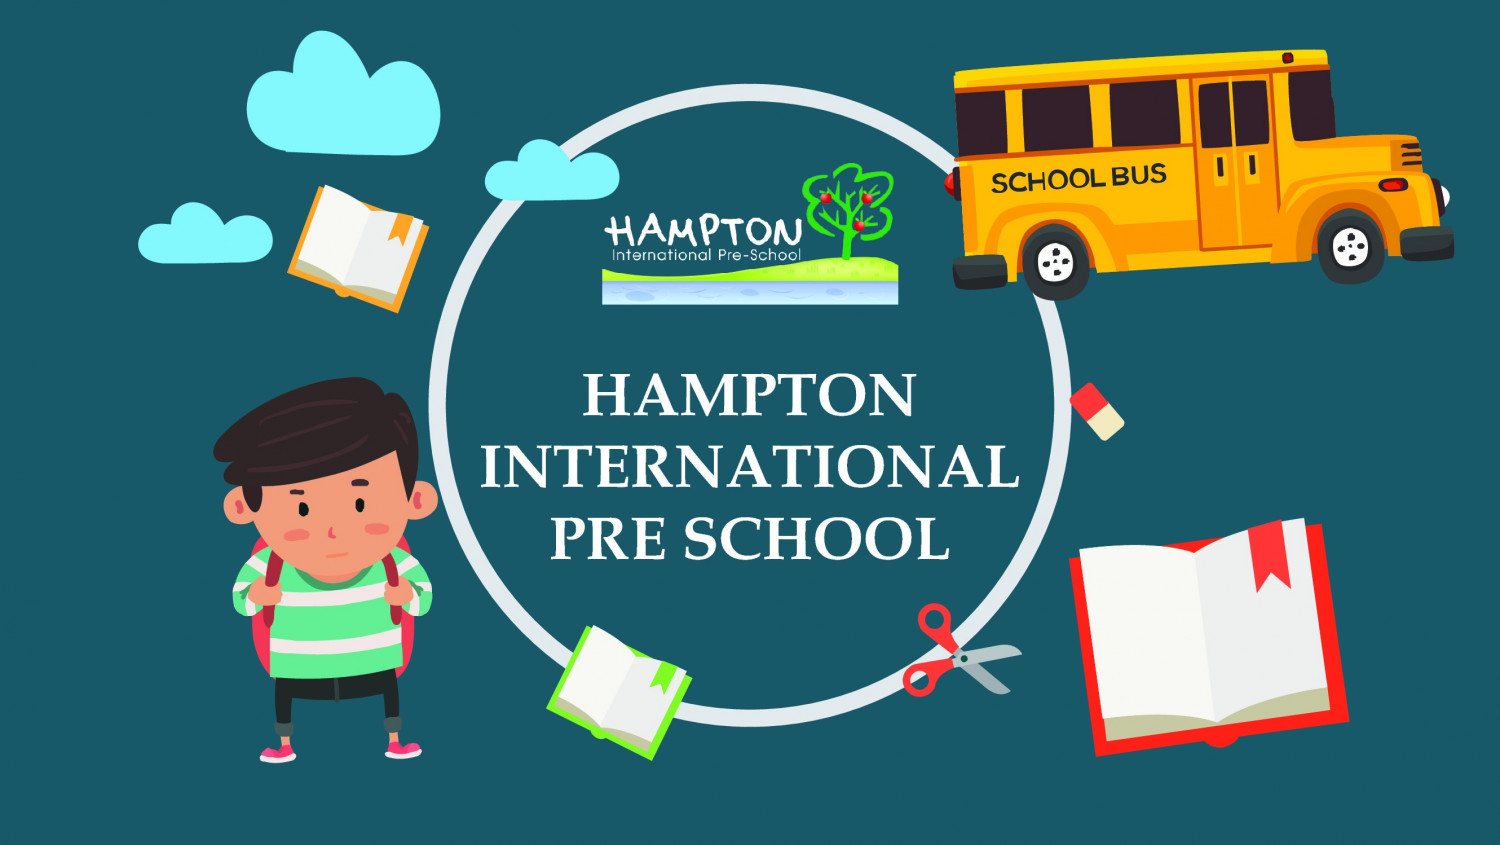 Hampton International Pre-School - Prep International Kindergarten Infographic